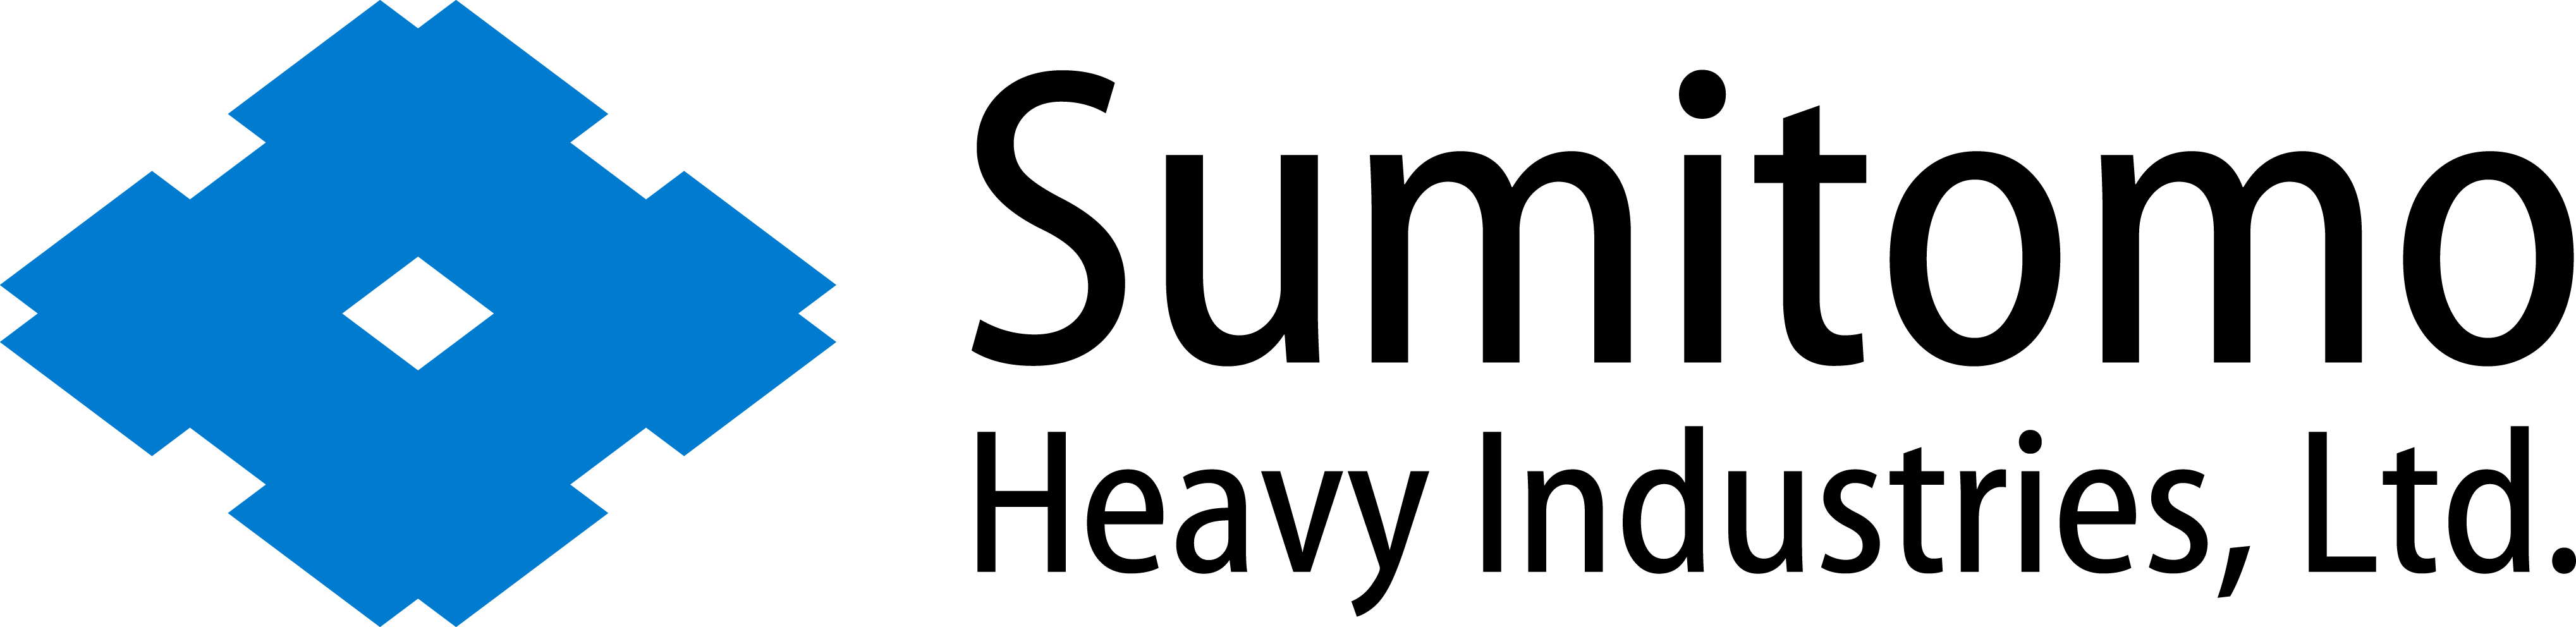 Sumitomo Heavy Industries, Ltd.